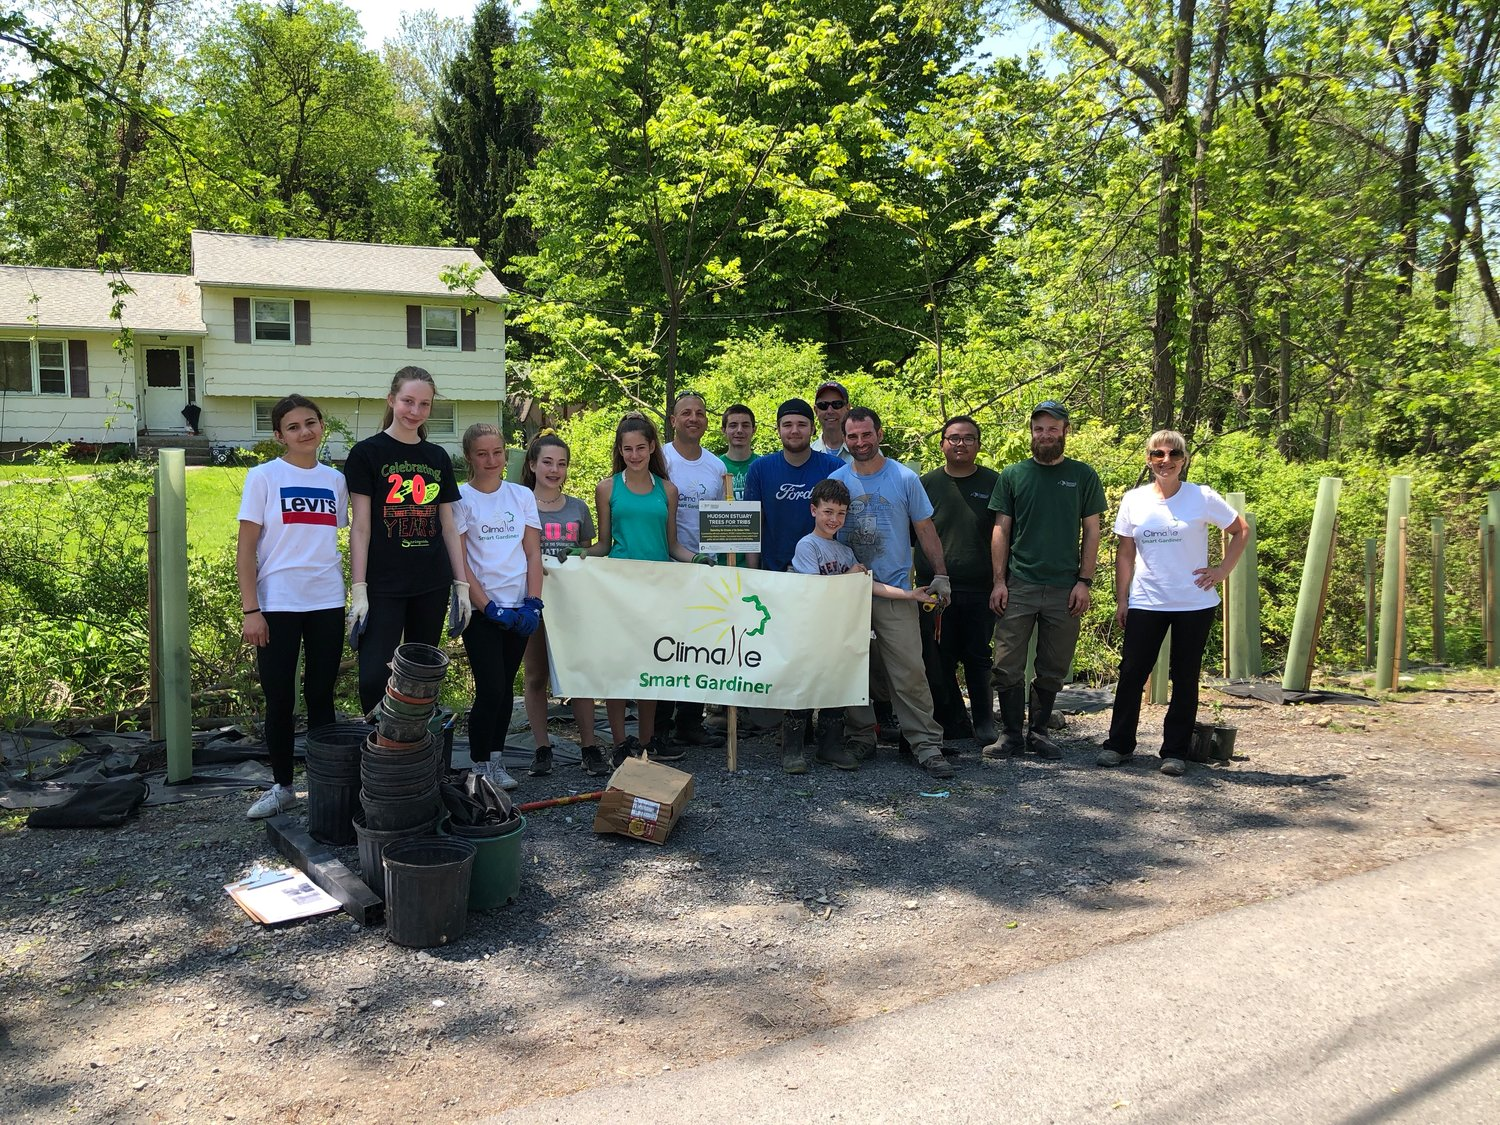 Climate Smart Gardiner members plant trees along the Wallkill River in a trees for tribs event.